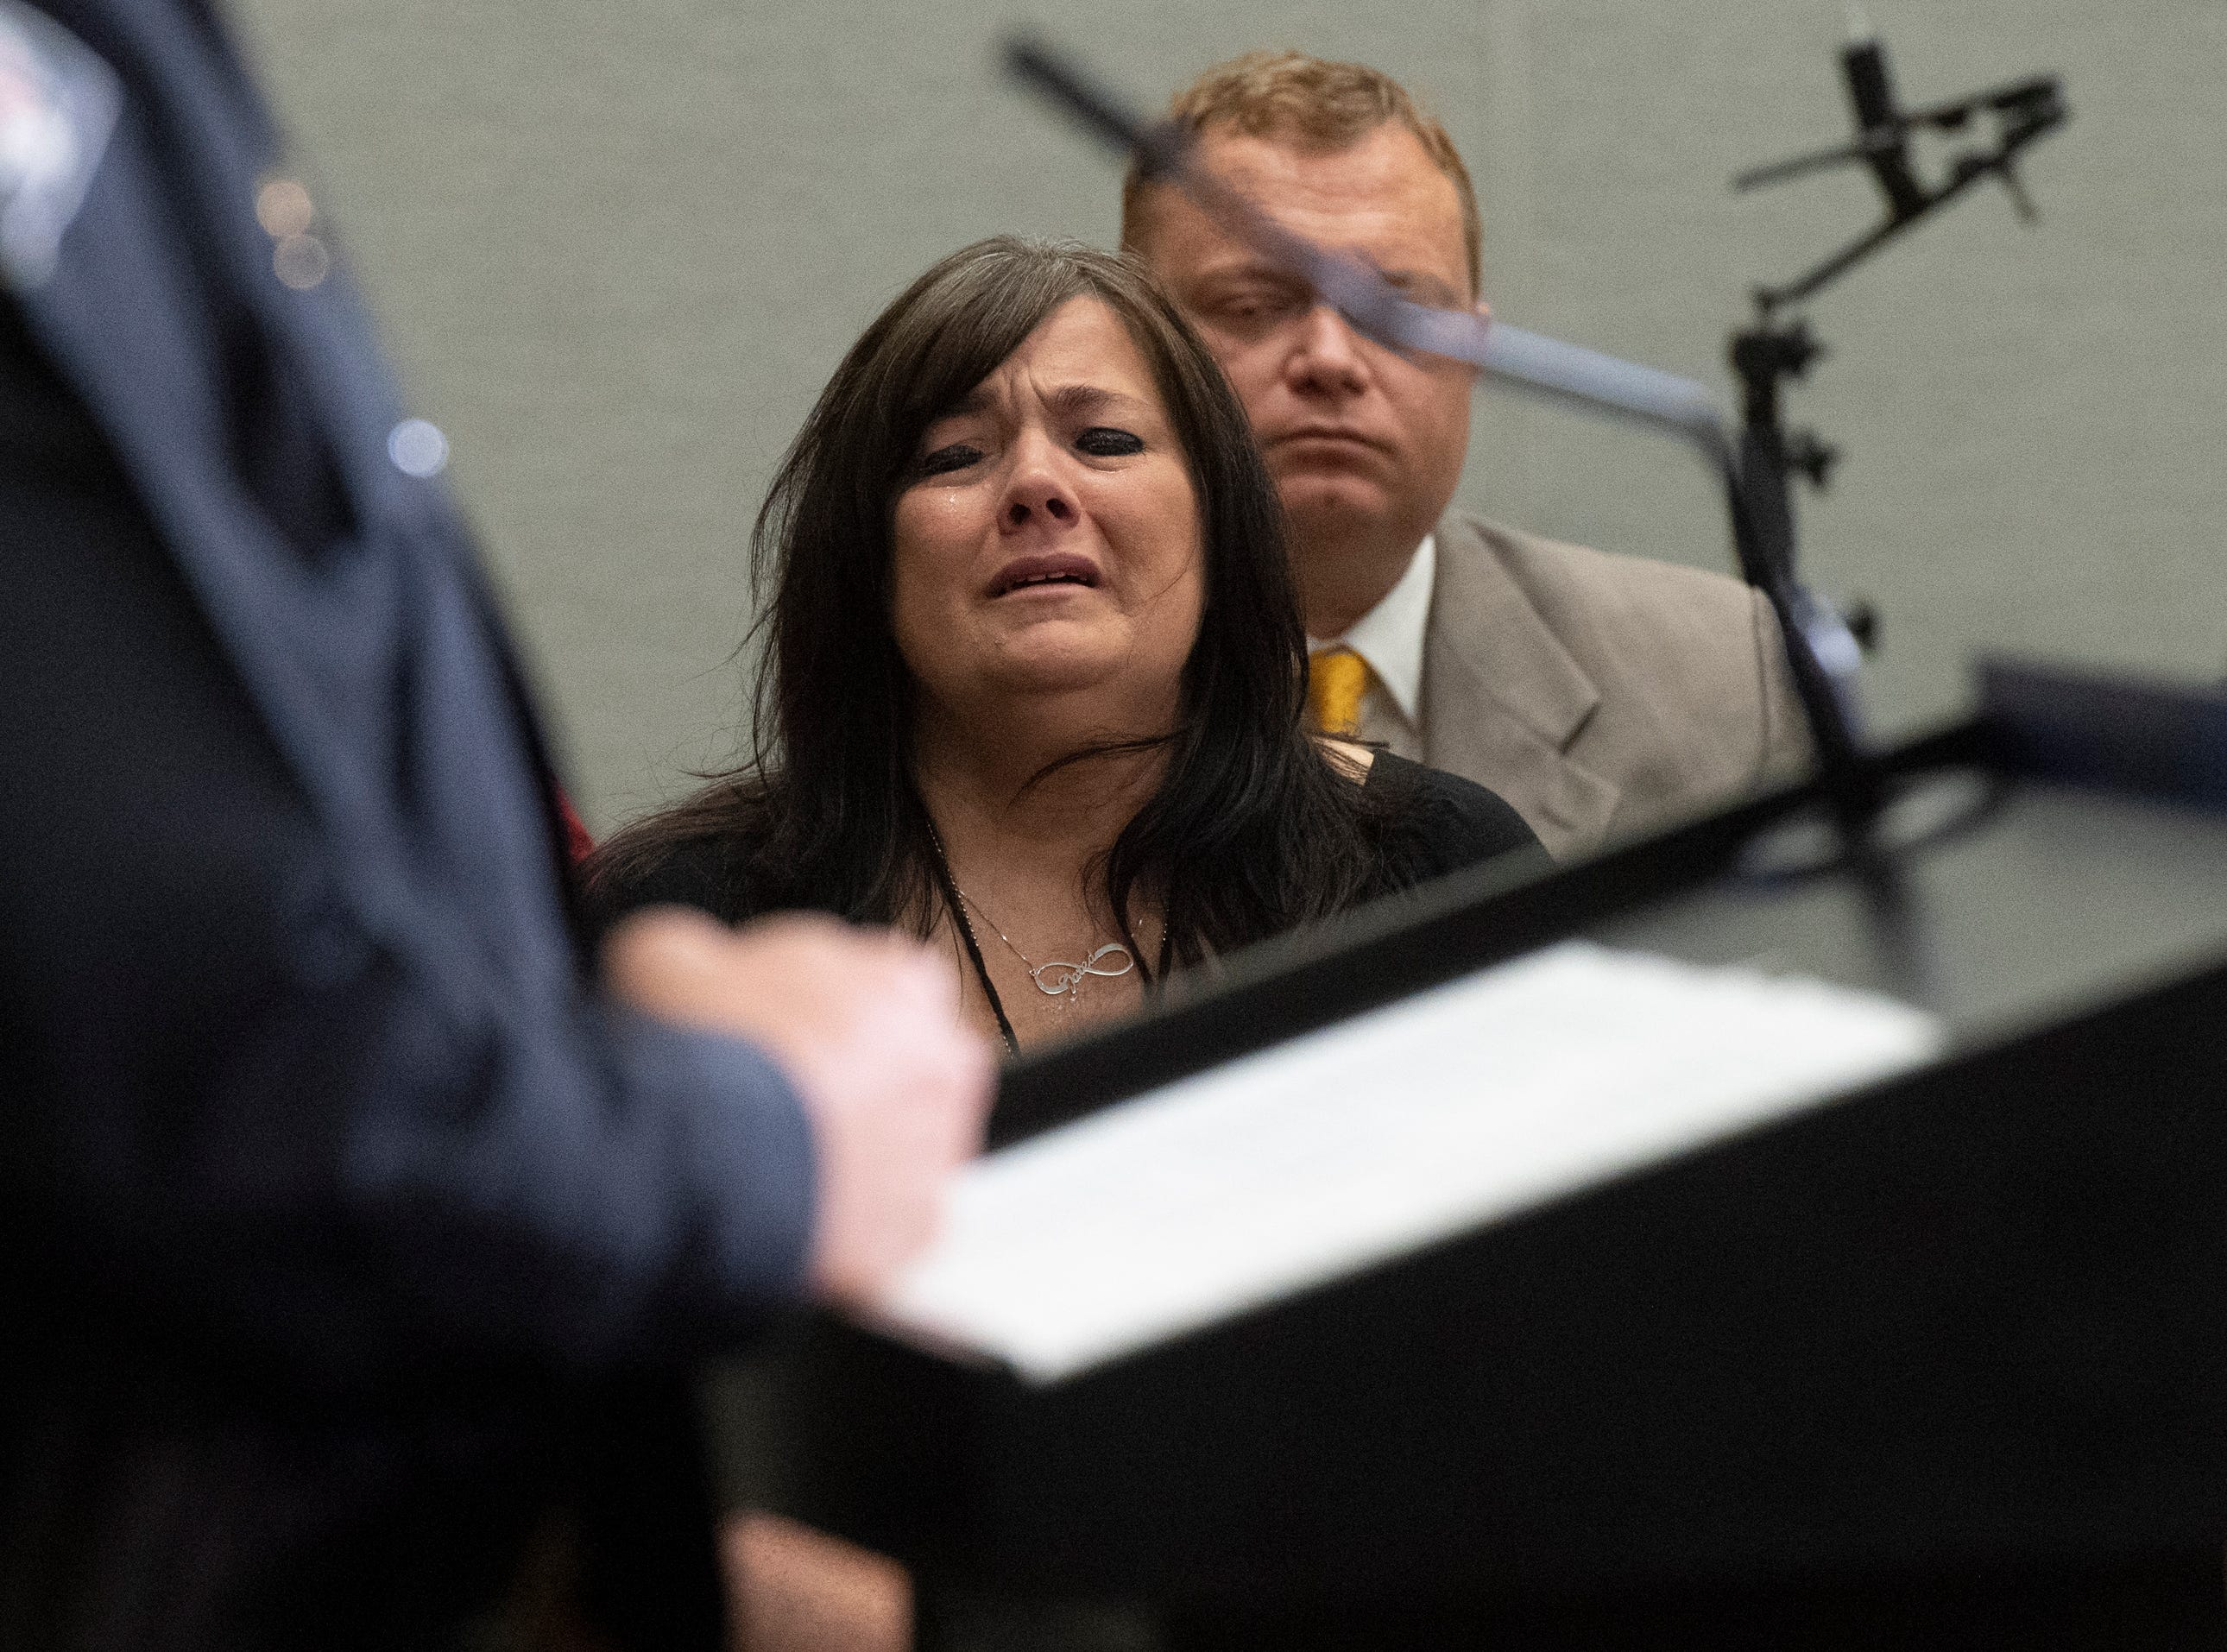 Army veteran Jared Johns' mother Kathy Bowling attends a press conference at the Greenville Convention Center Friday, May 10, 2019.